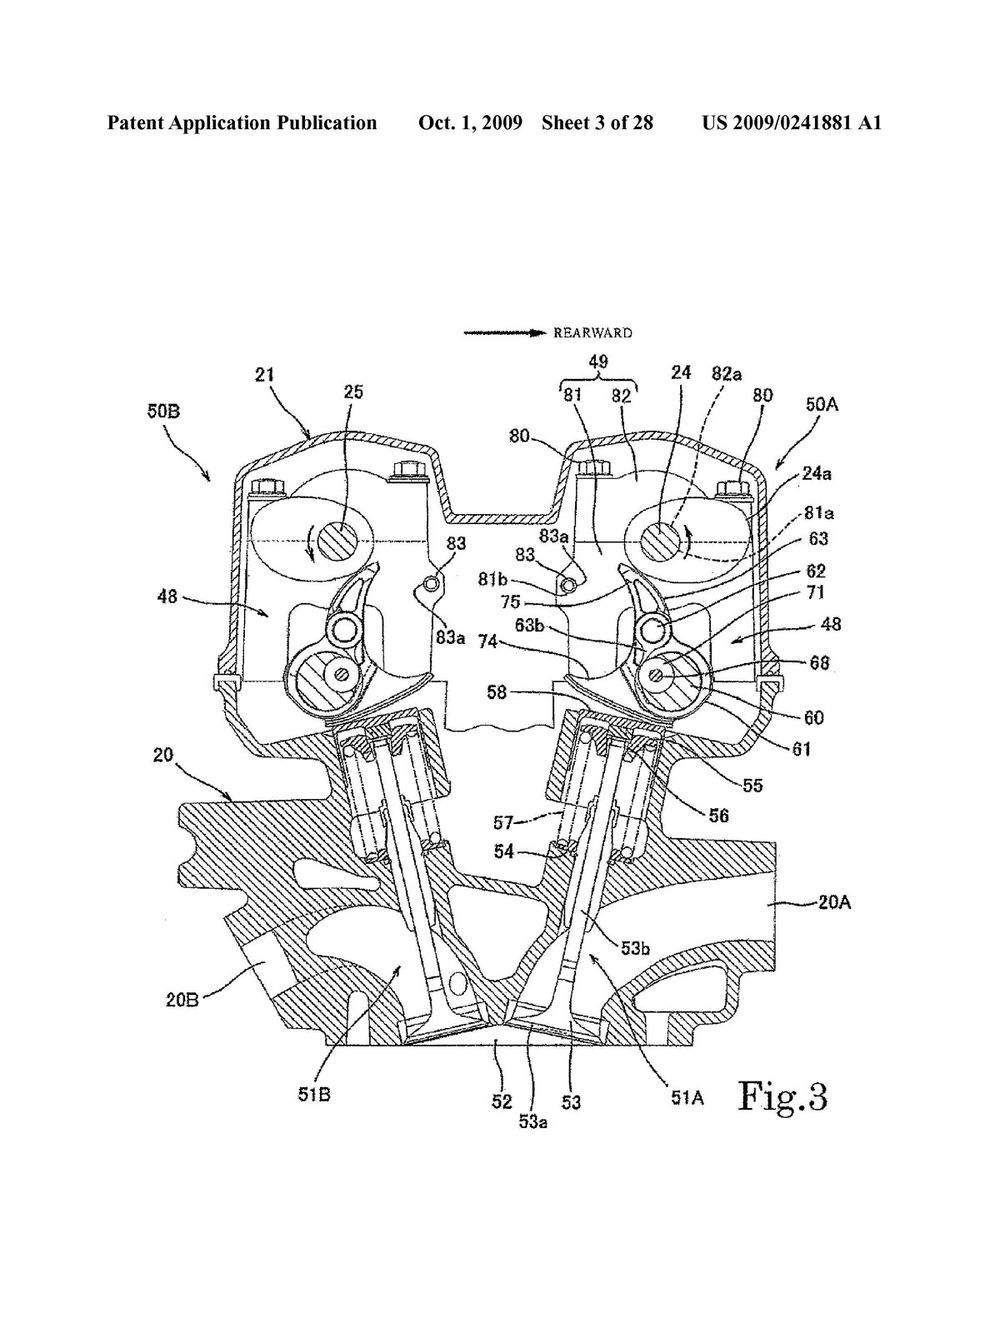 1000x1333 Drawing The Line Motorcycle Patent Applications Motorcyclist